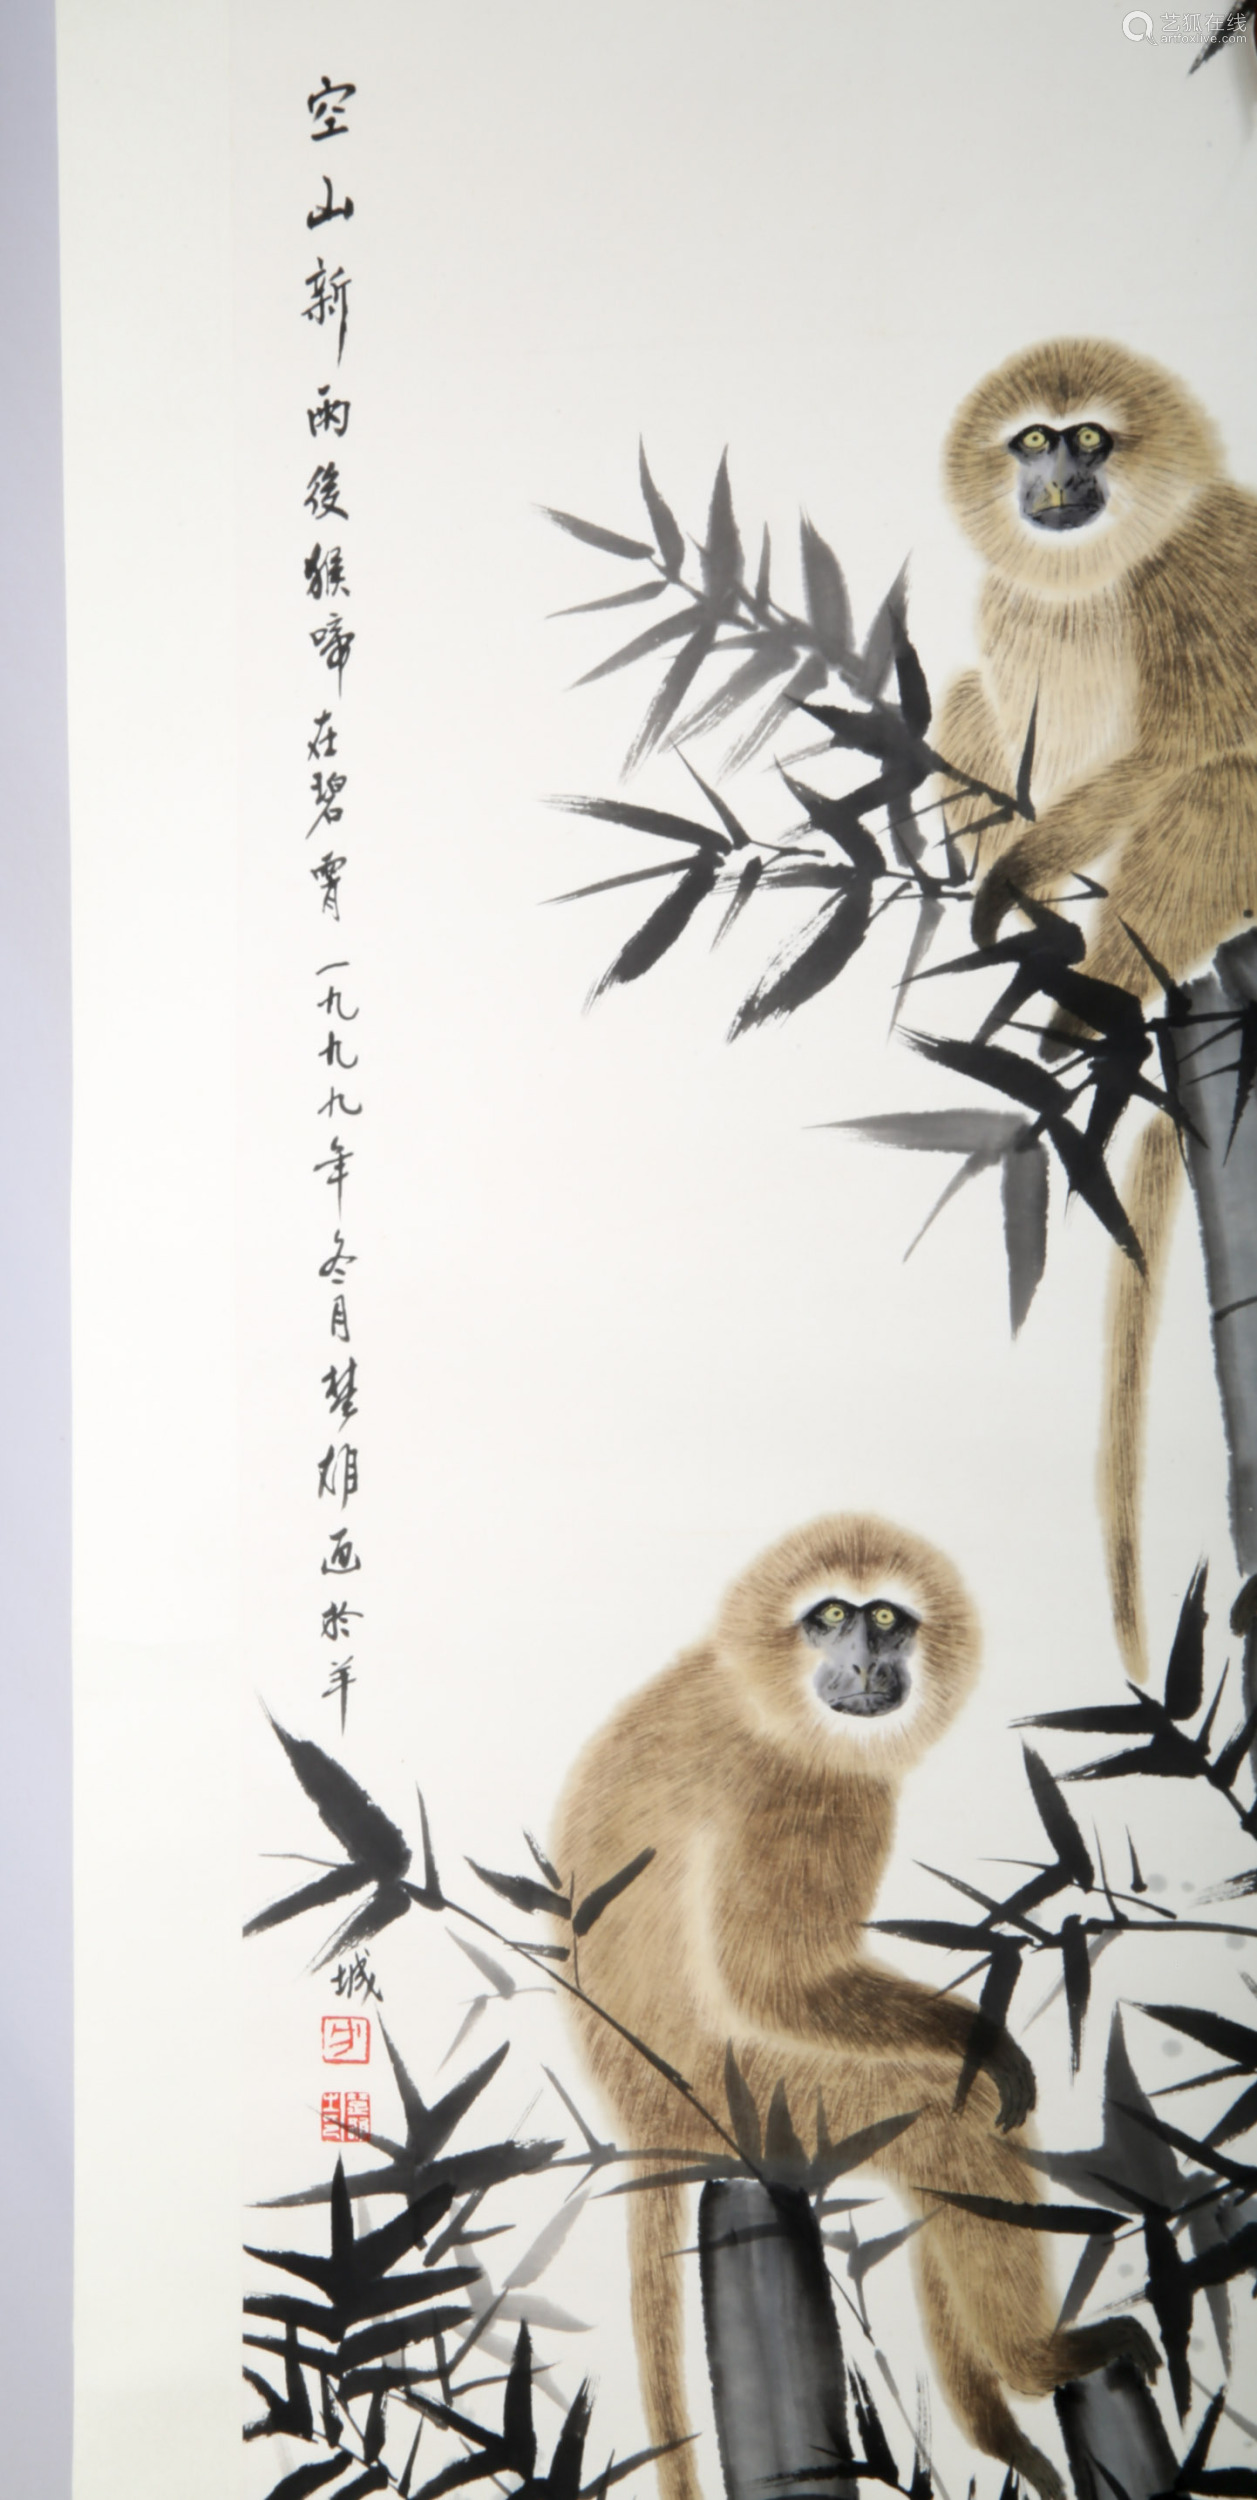 SIGNED FANG CHUXIONG (1950- ). A INK AND COLOR ON PAPER HANGING SCROLL PAINTING. H207.